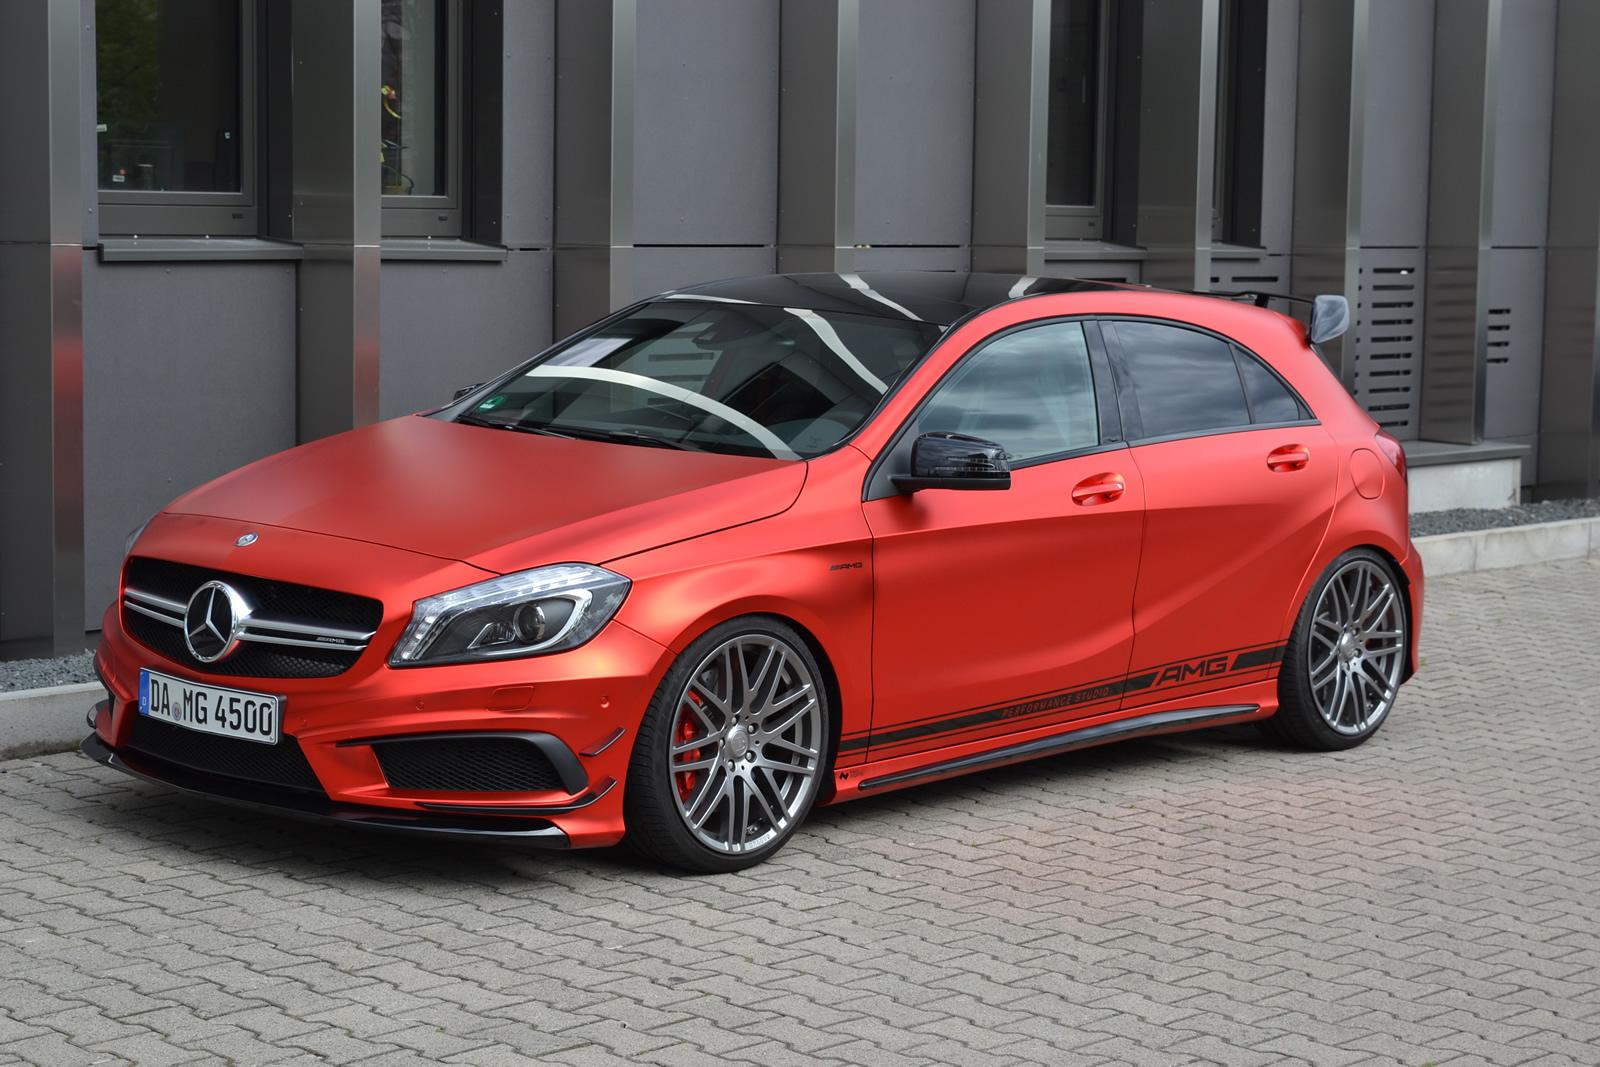 Mercedes Benz A45 Amg Gets Wrapped In Wonderful Red Matte